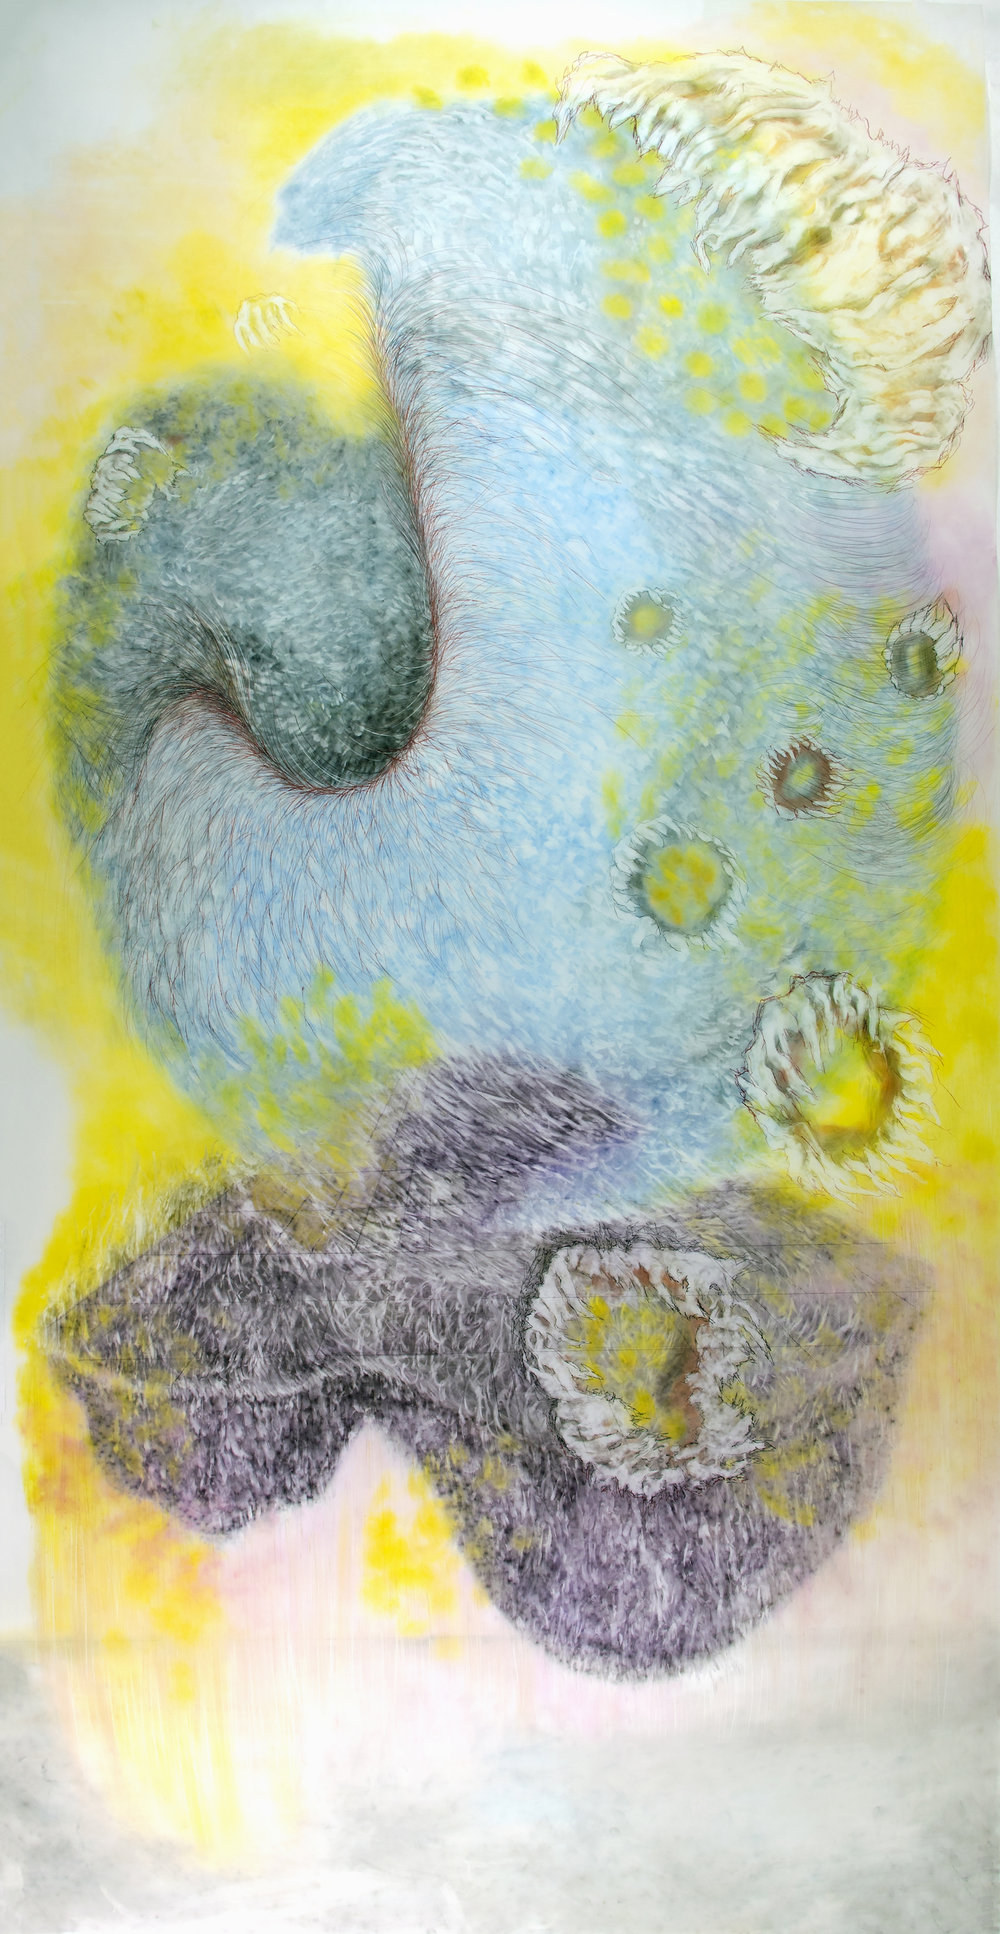 Observed and Recorded Permutation of the Holy Spirit XV (40 inches x 79.5 inches-pastel and powdered graphite erasing on dura-lar)